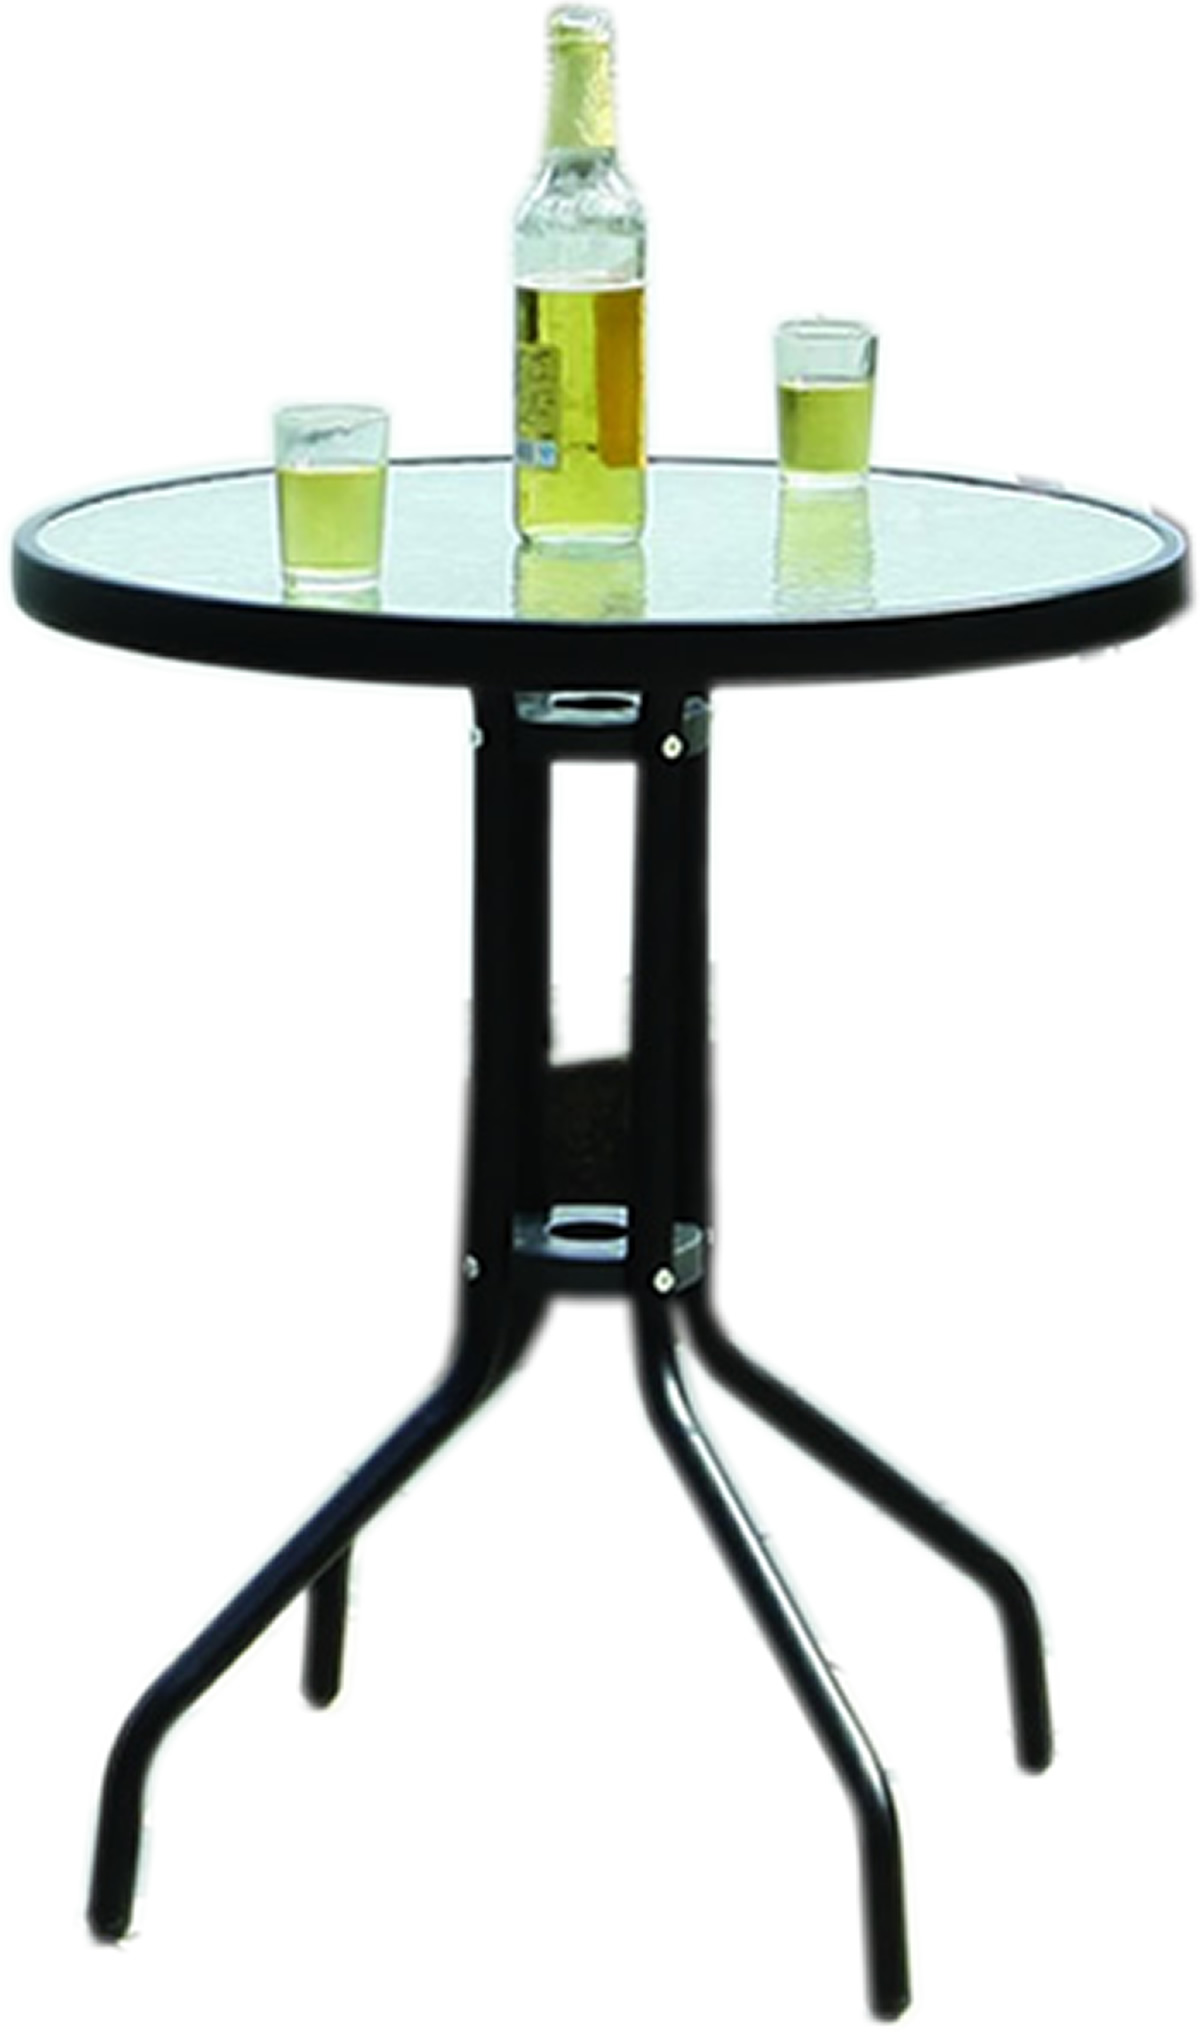 Glass Top Outdoor Table Black Metal Frame Bistro Table With Glass Tabletop Outdoor